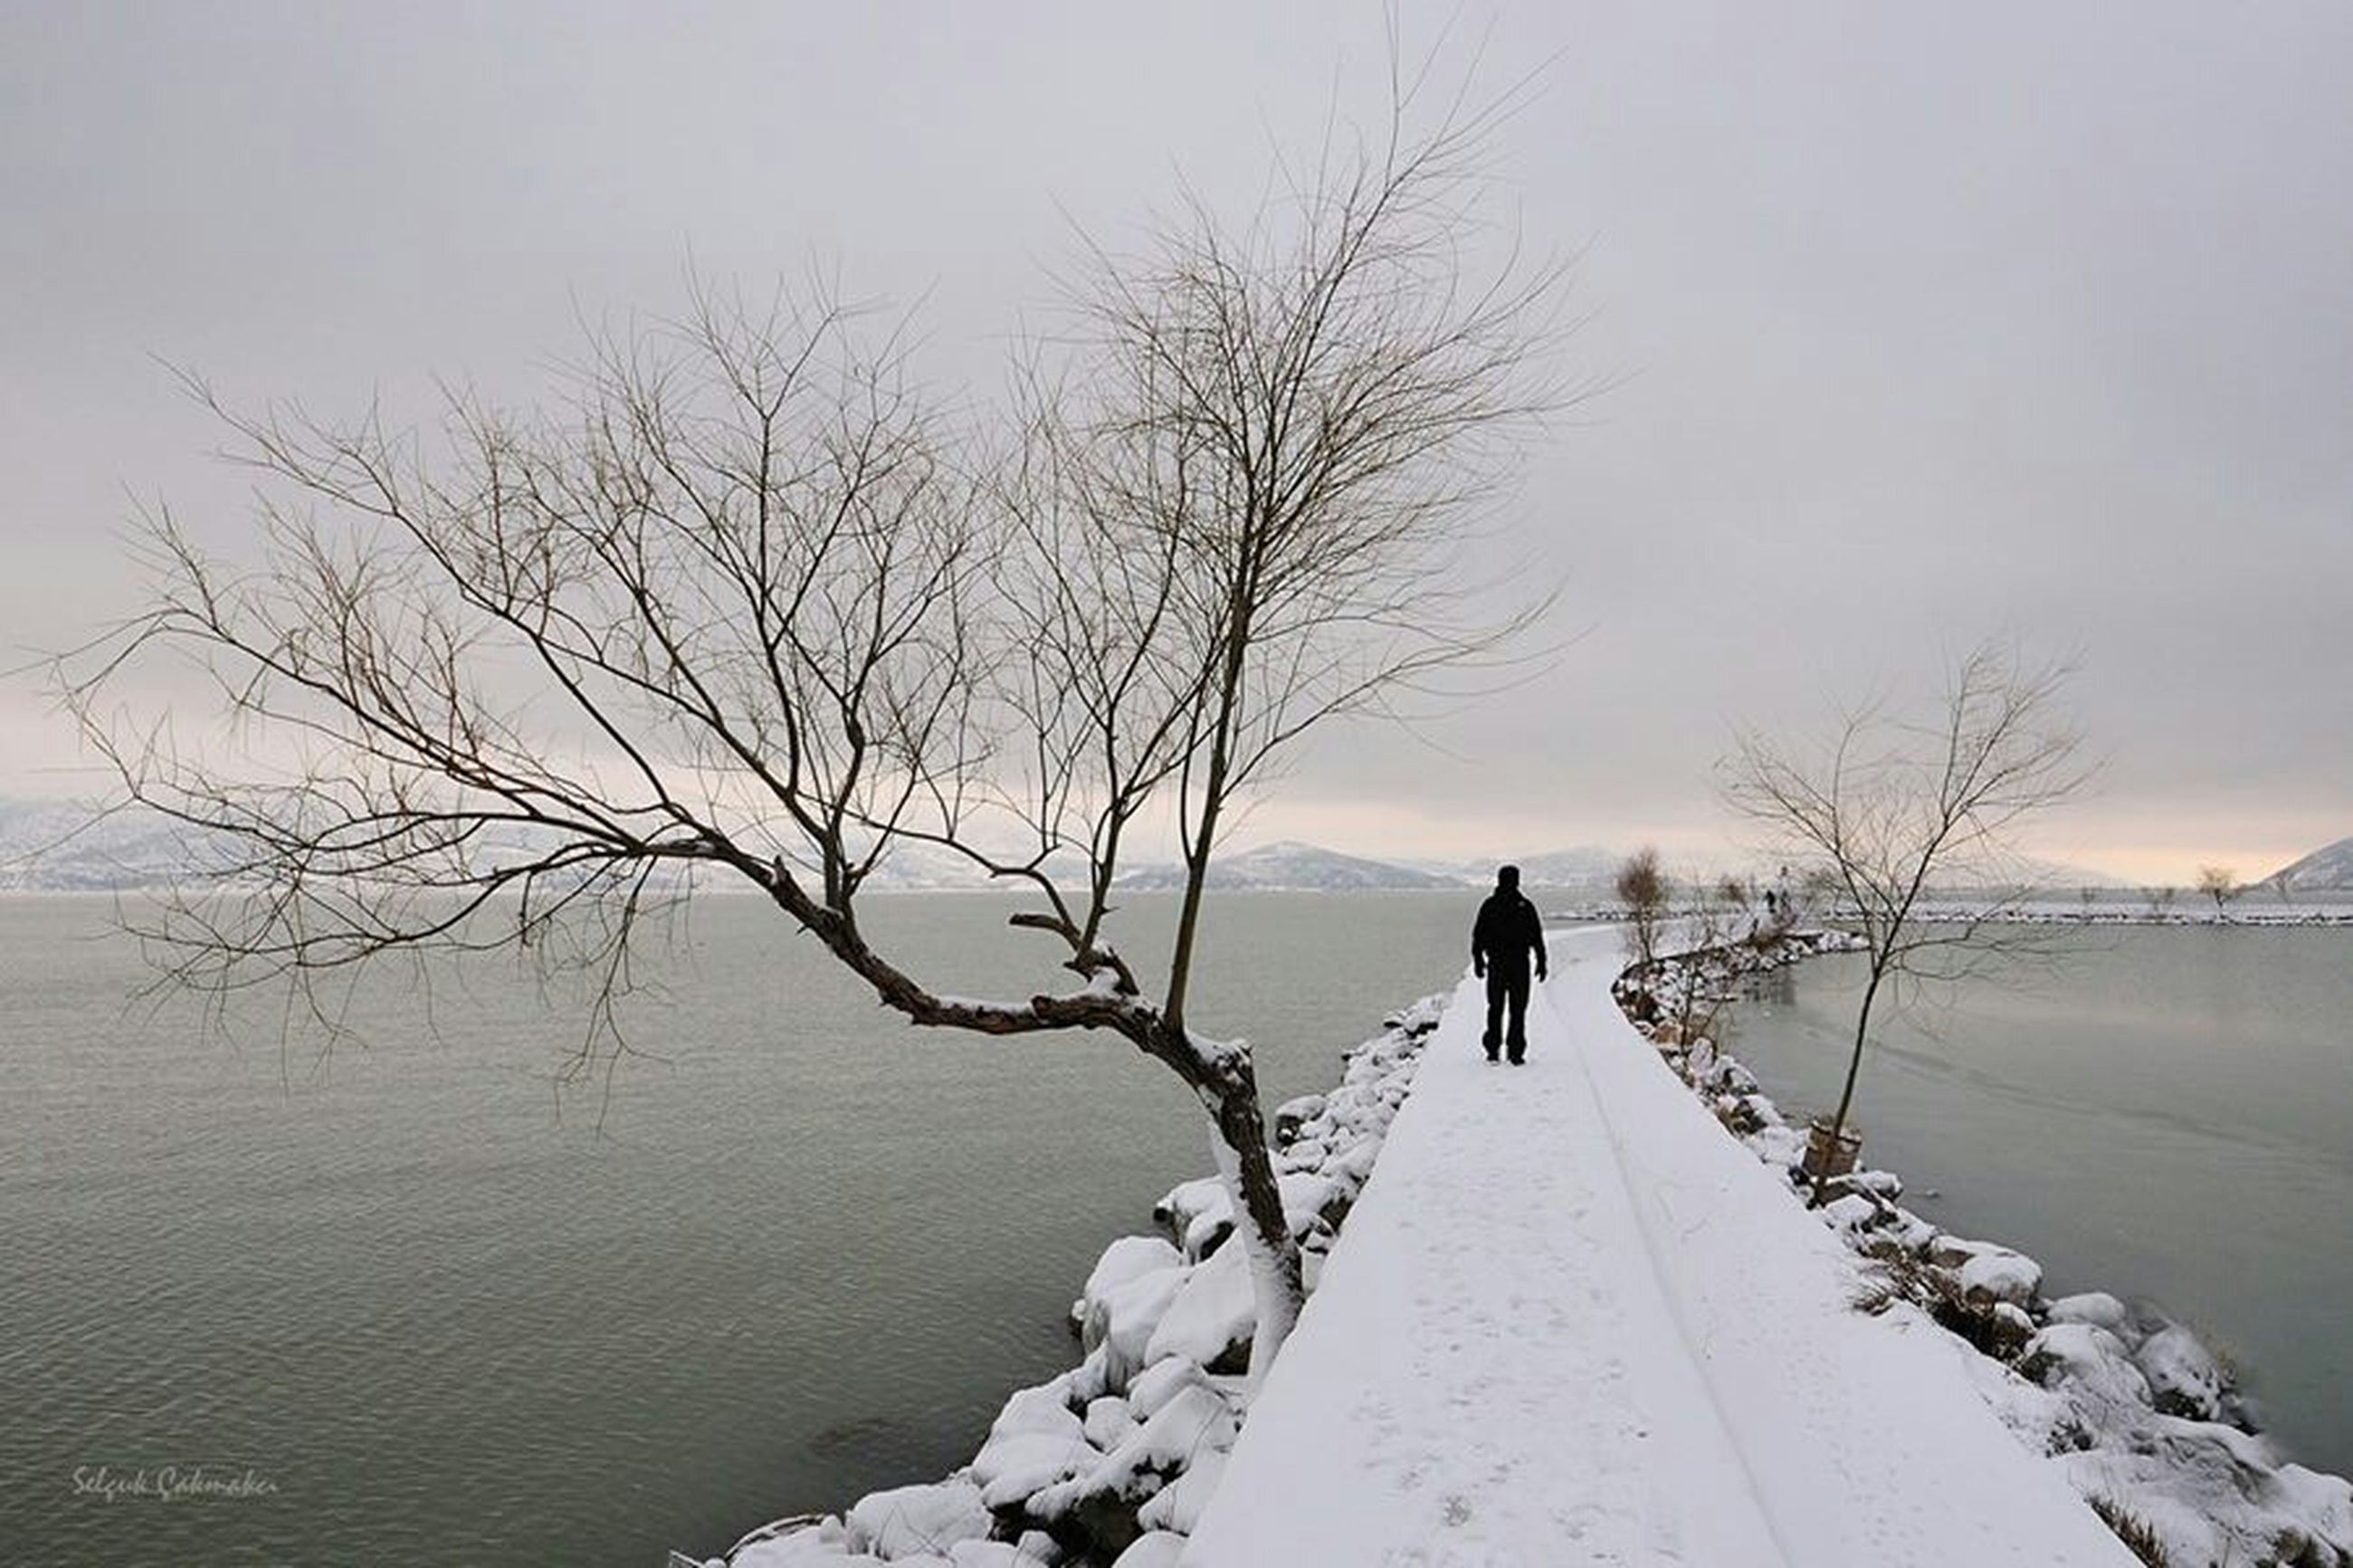 bare tree, winter, snow, cold temperature, rear view, full length, silhouette, water, walking, tranquil scene, tranquility, men, season, tree, nature, lifestyles, sky, standing